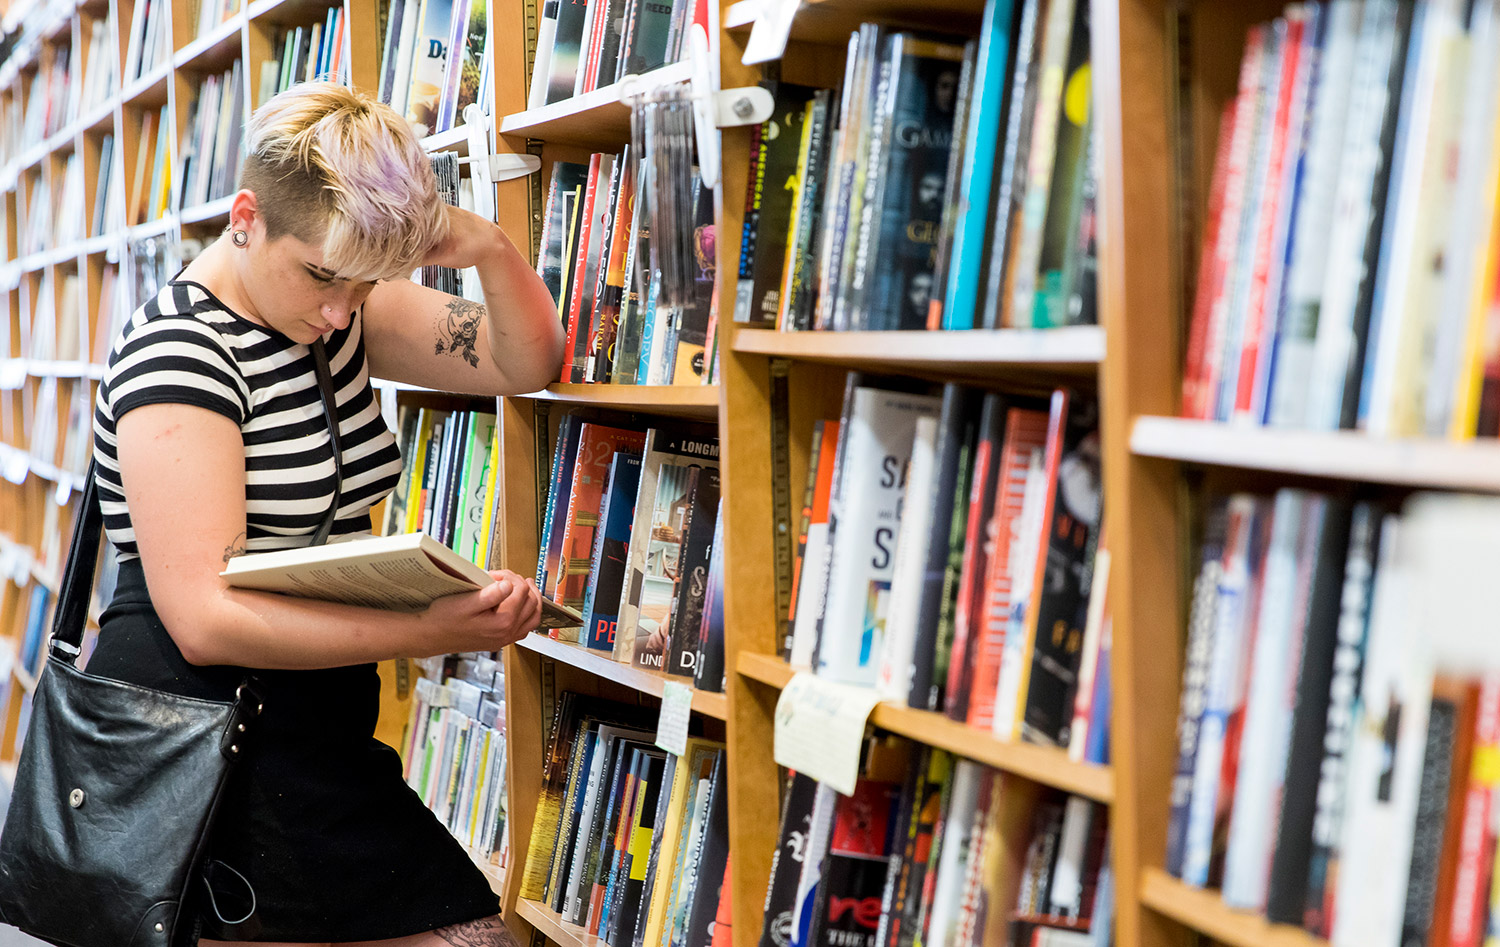 Riley Saladino of Portland flips through a book at Sherman Books on Exchange Street.